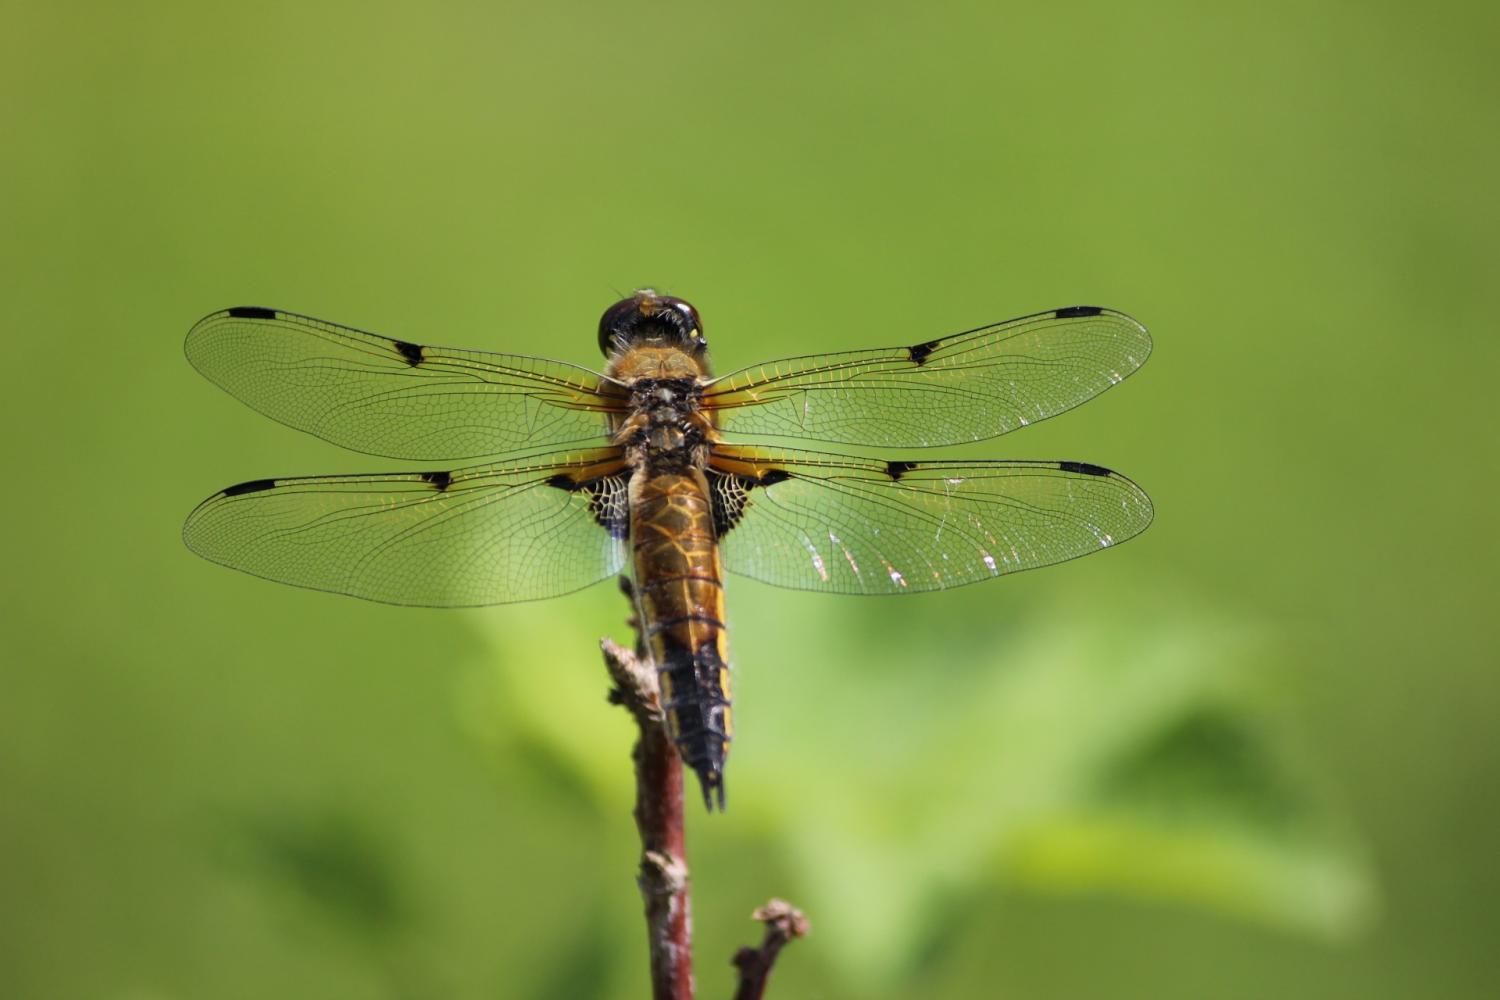 Male dragonflies lose their 'bling' in hotter climates